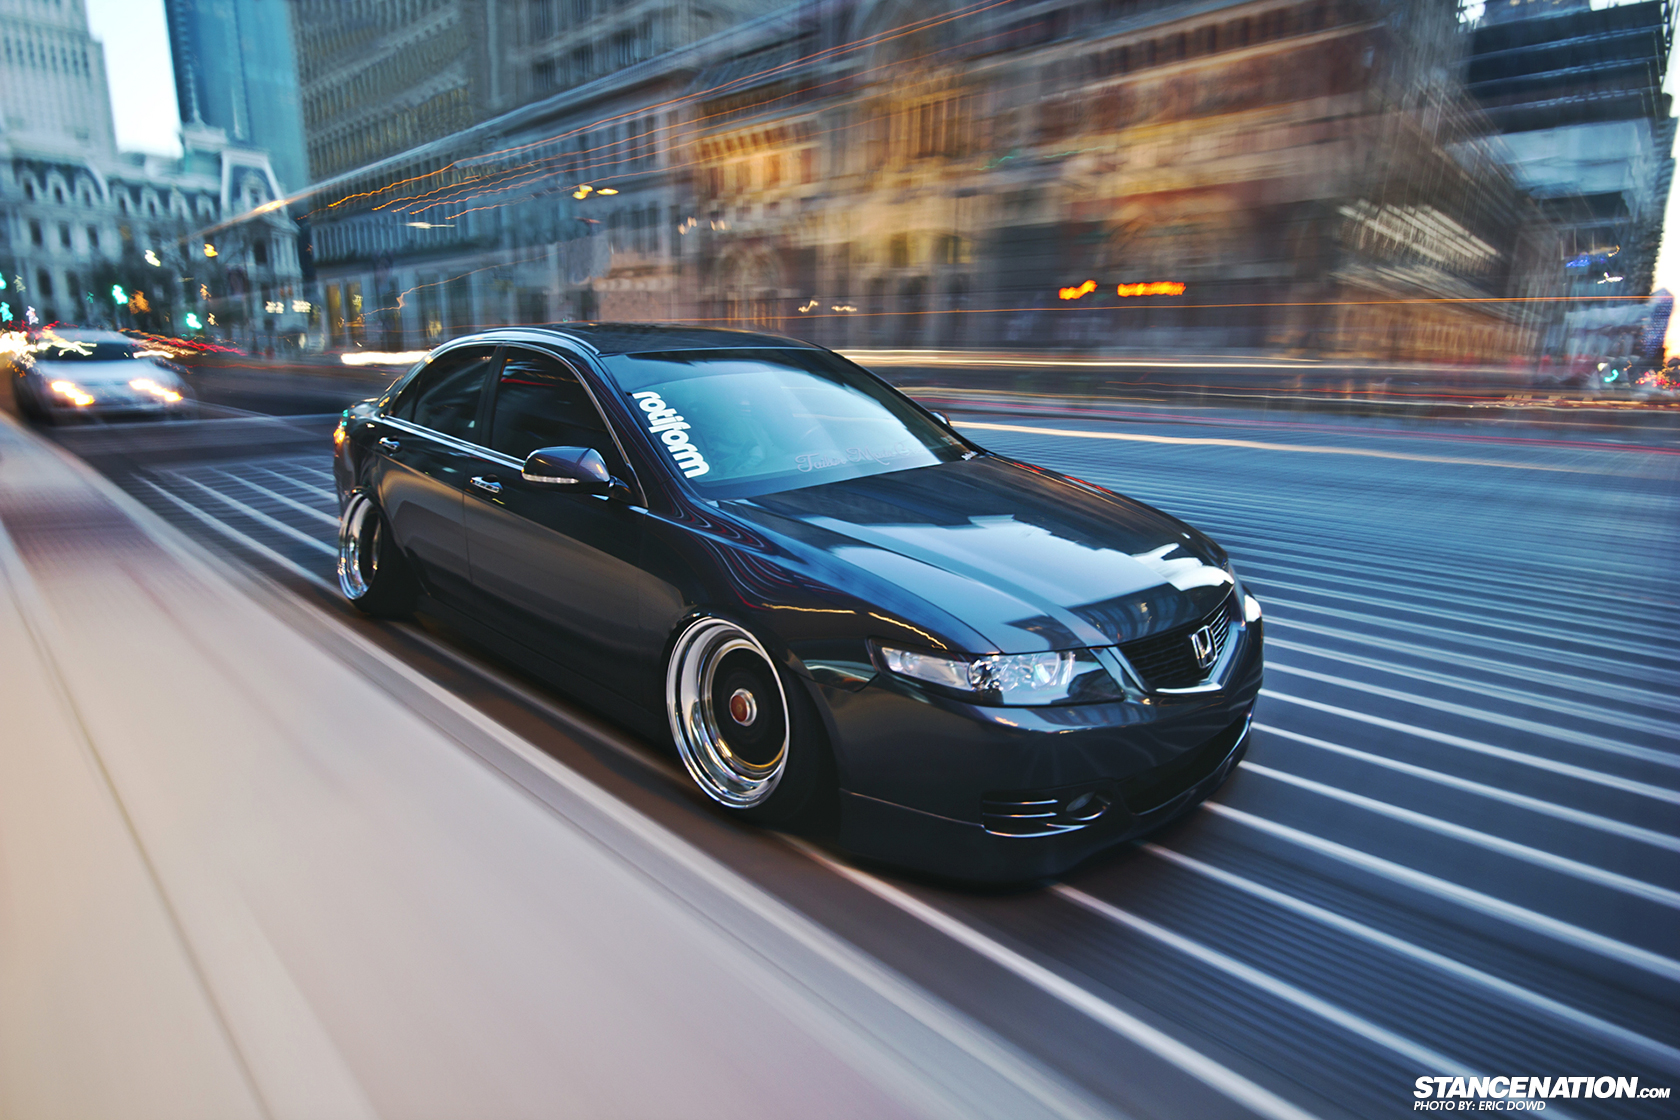 Dumped Cambered Matthews Acura TSX StanceNation Form - Acura tsx rims 18